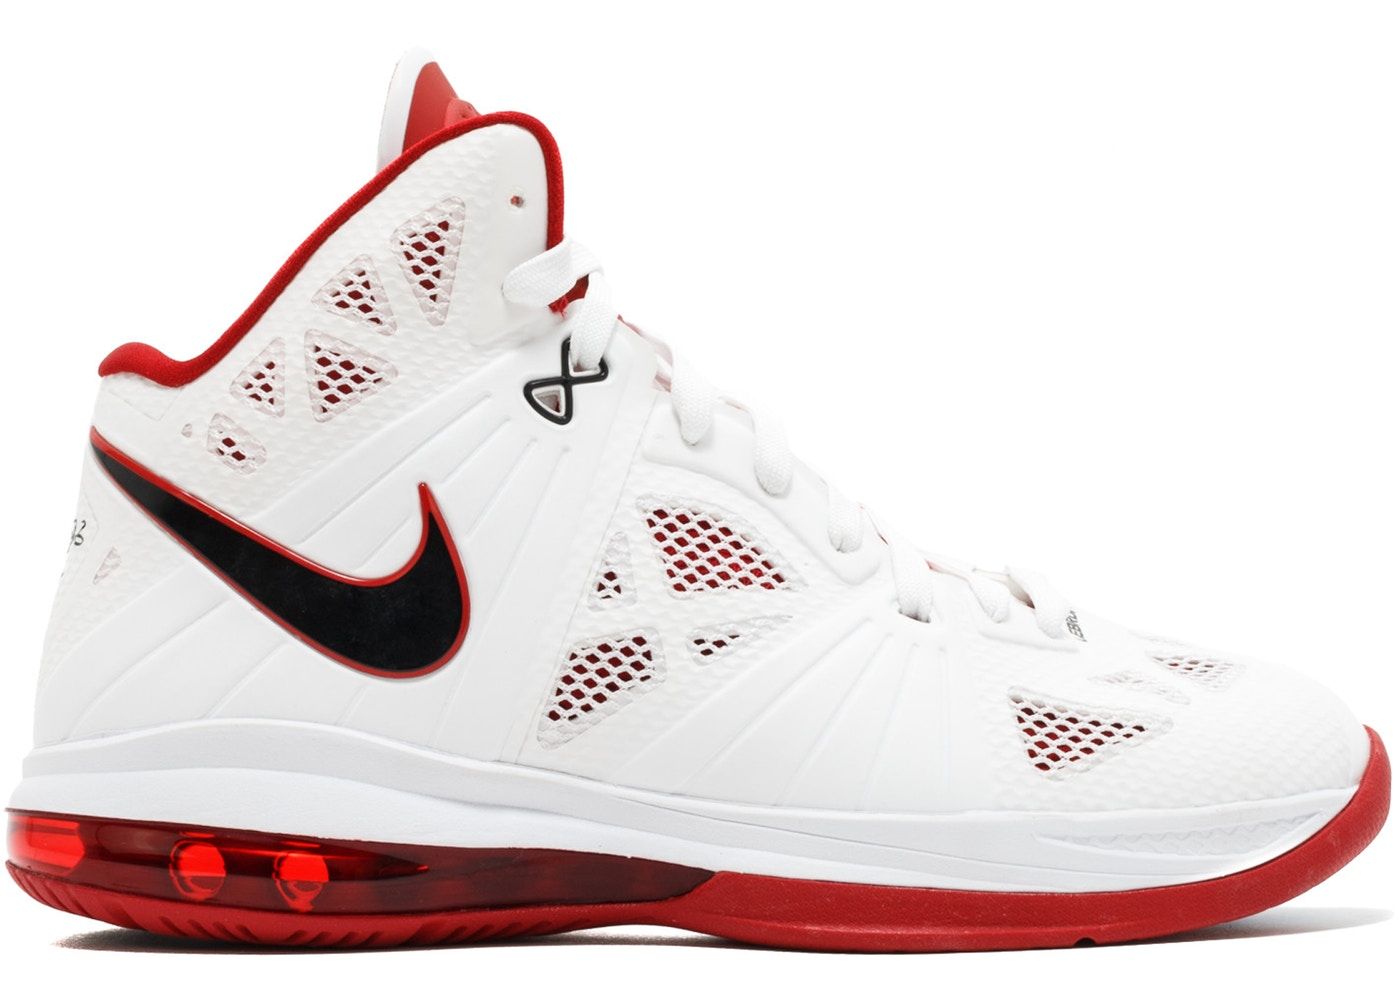 475f854c0b835b Buy Nike LeBron 8 Shoes   Deadstock Sneakers